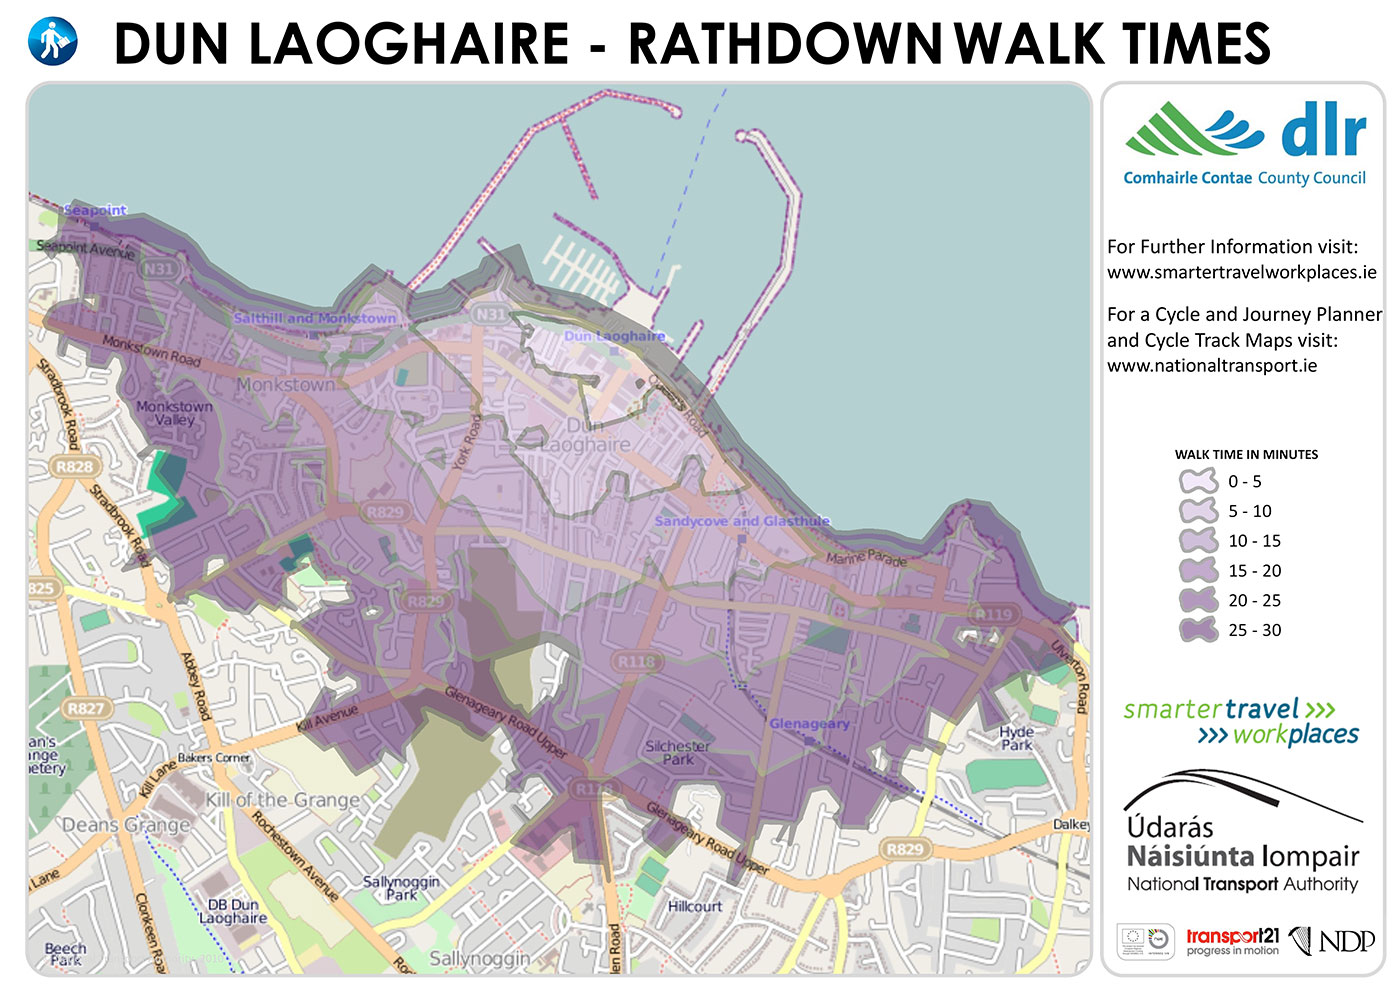 Dun laoghaire and Rathdown: DLR Tourism walk times information map